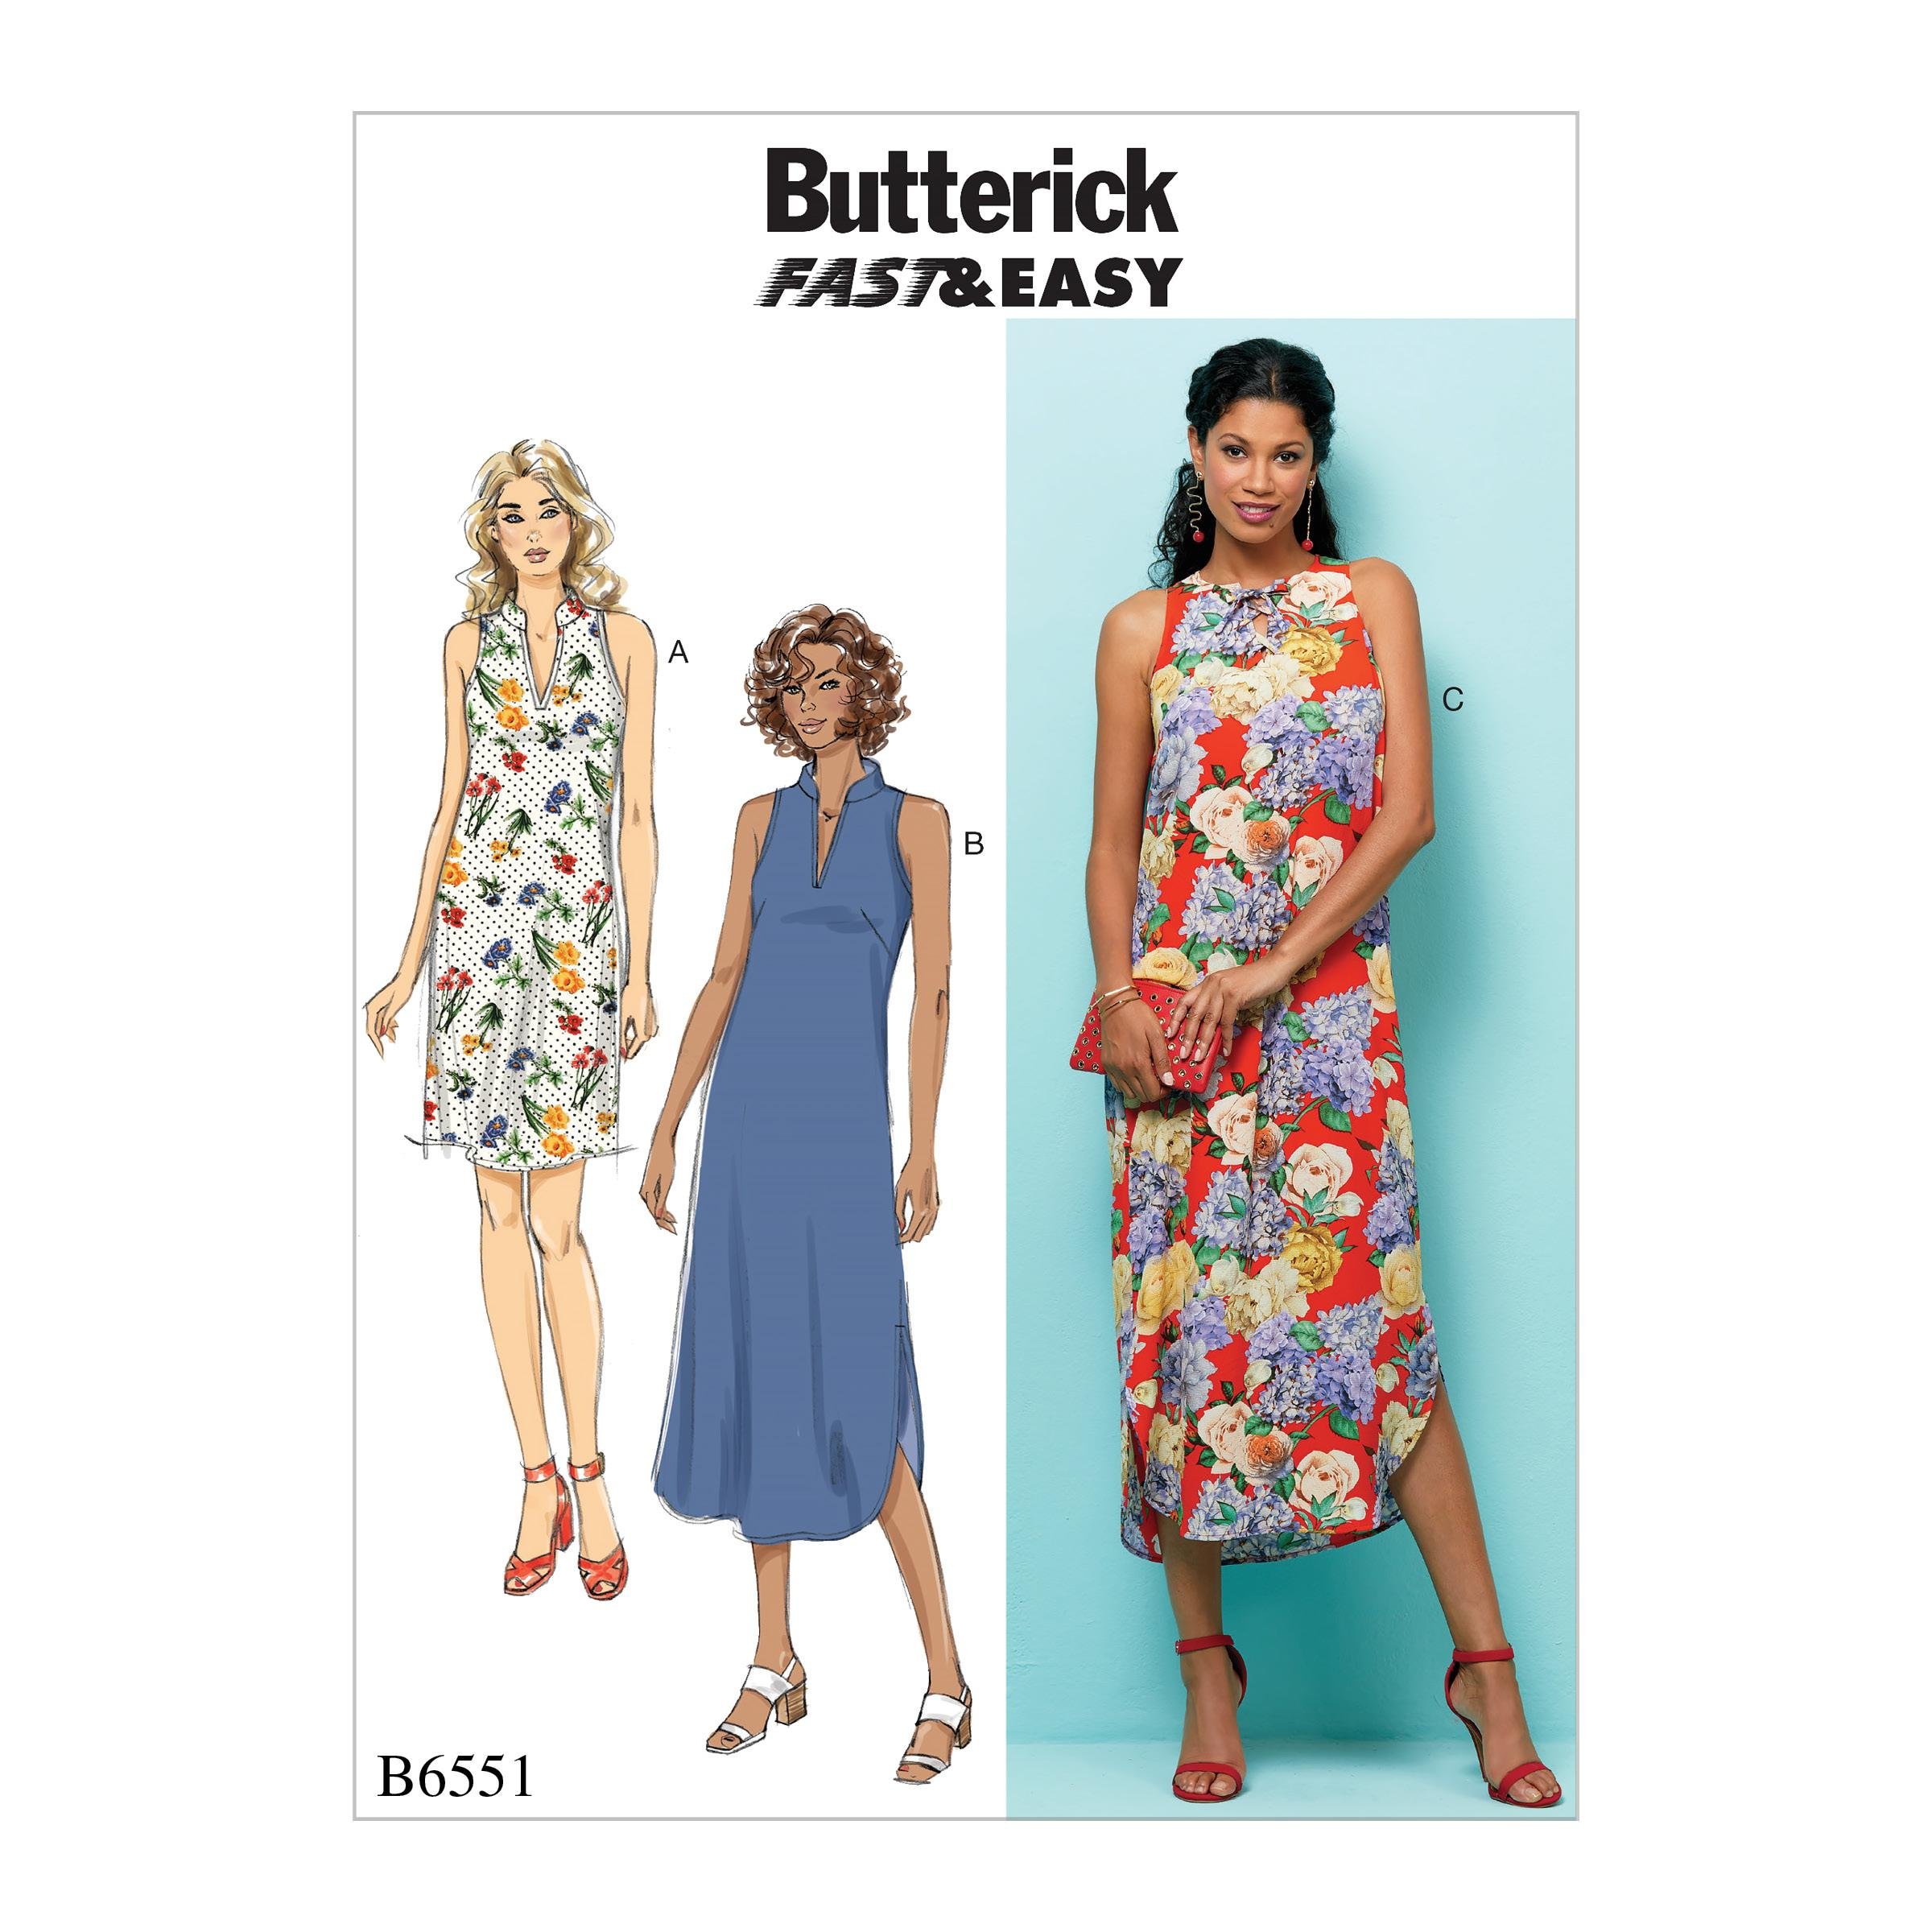 Butterick B6551 Misses' Dress